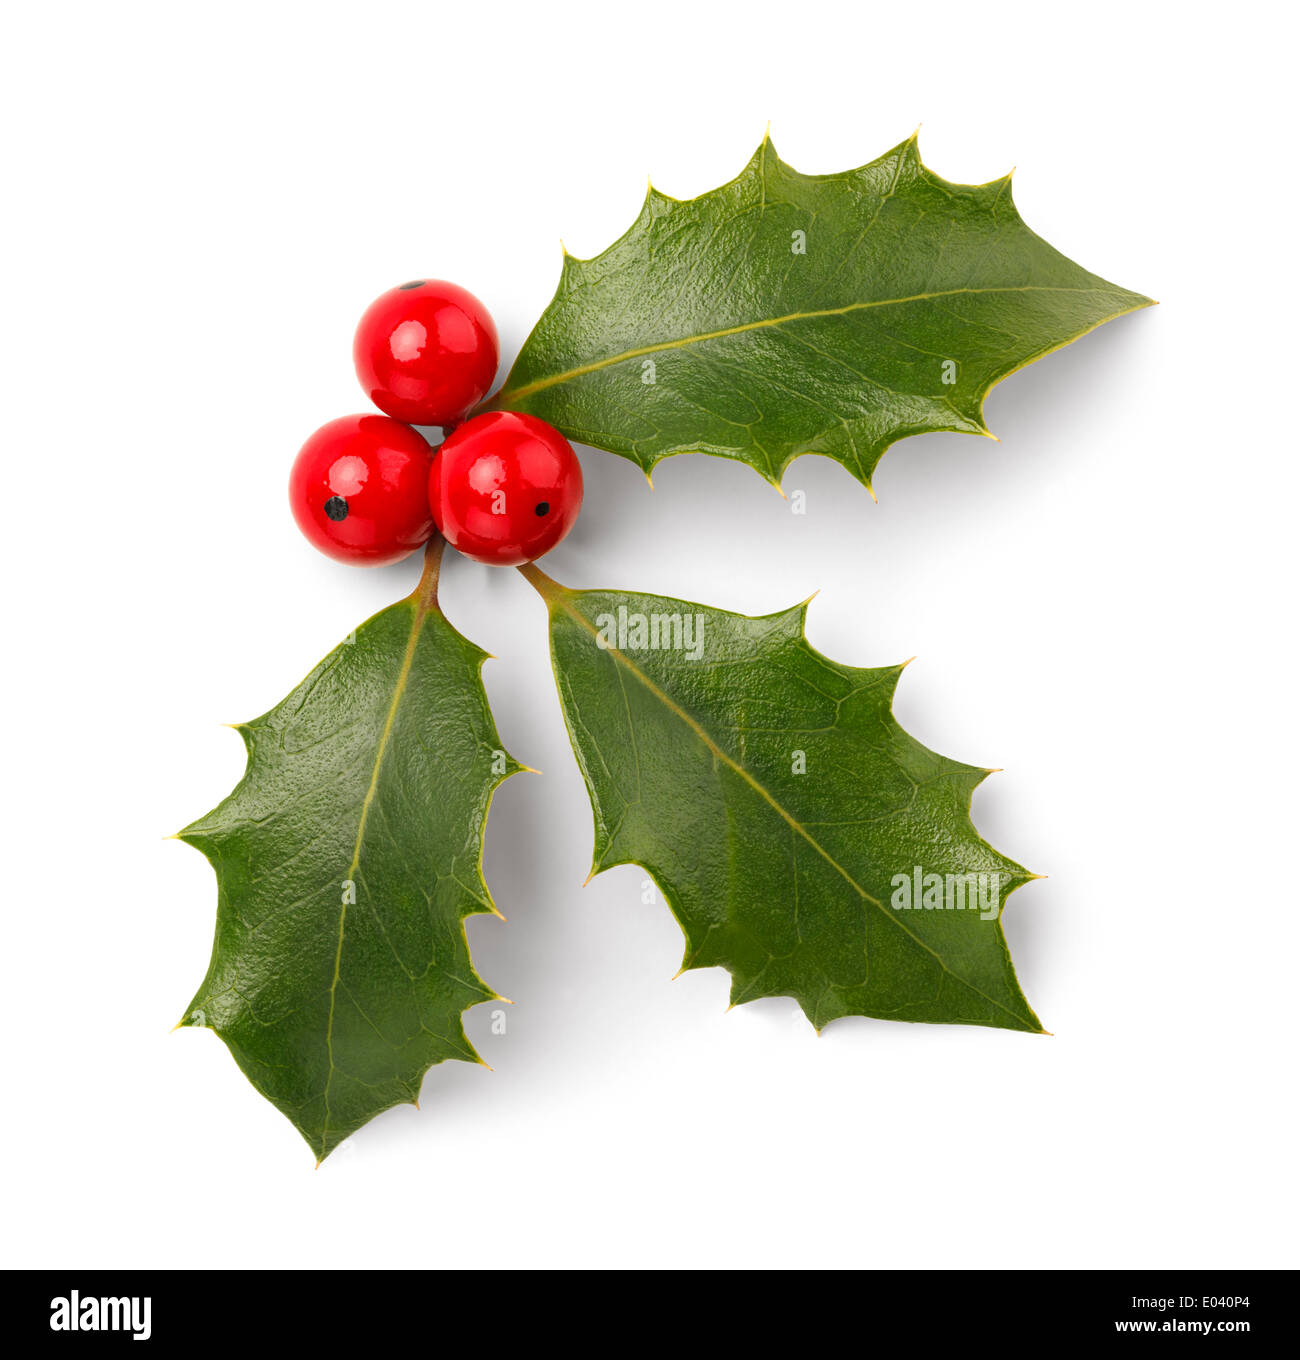 Holly Leaves and Red Berries Isolated on White Background. - Stock Image